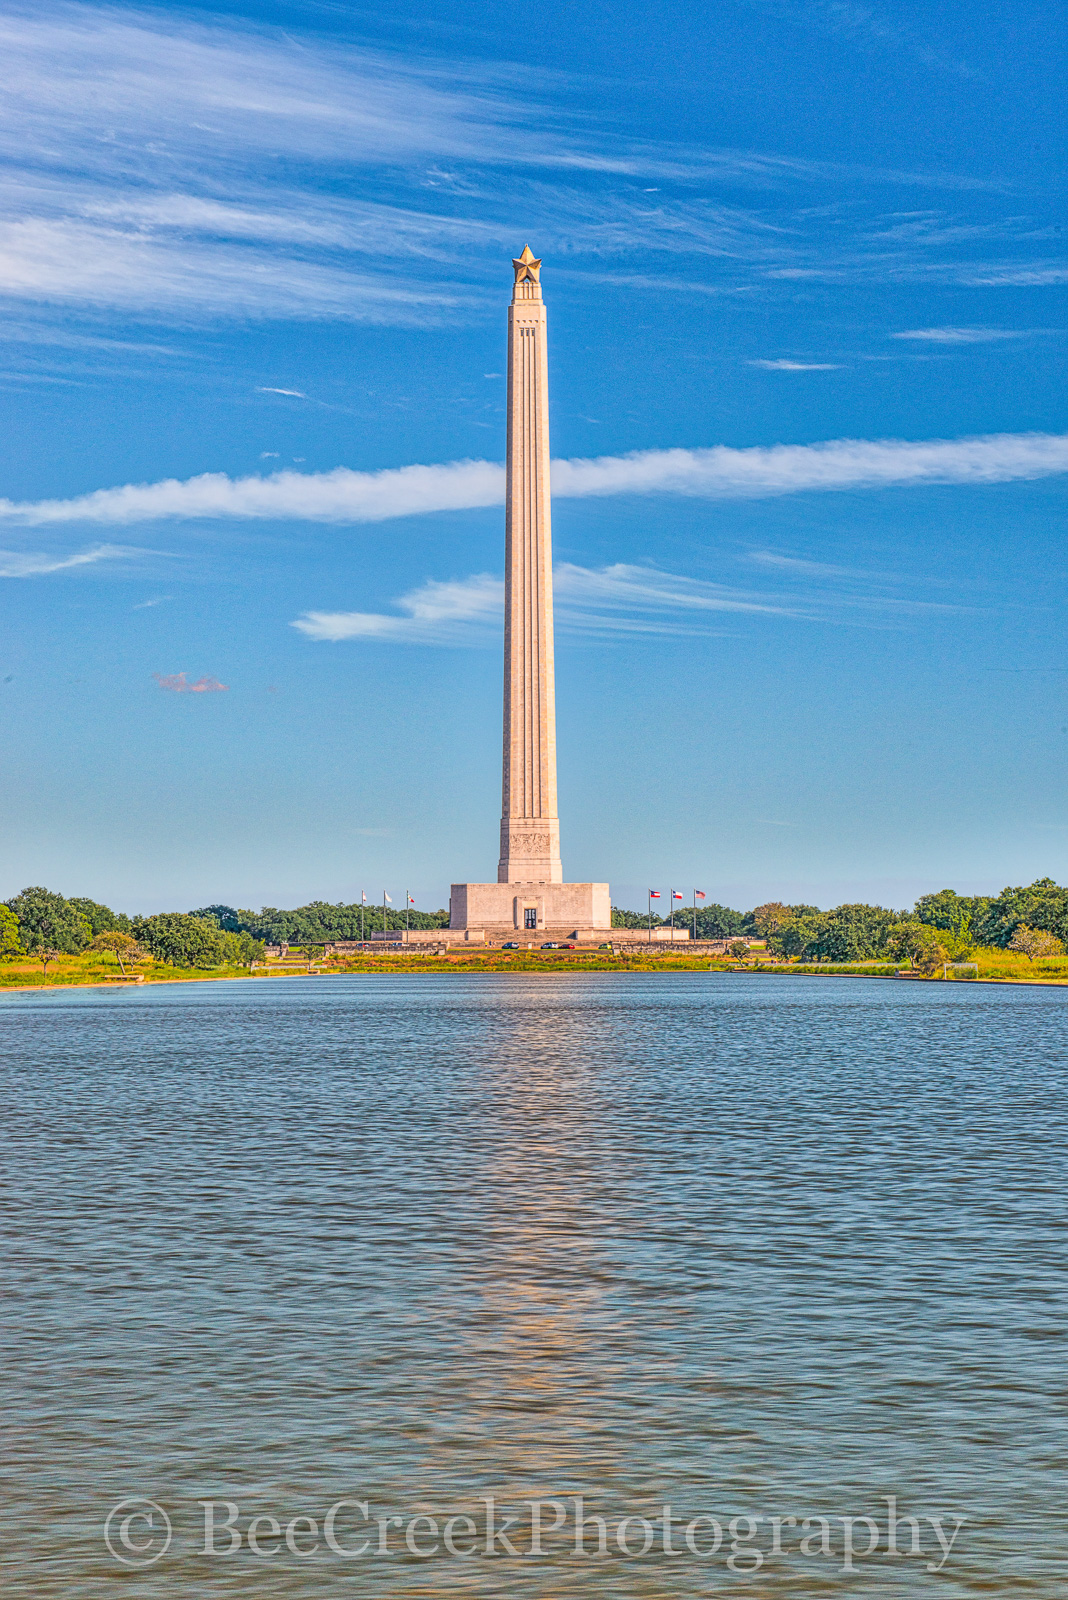 Houston, San Jacinto Monument,  La Porte, blue, city, fountain, historic, landmark, ship channel, sky, water, photo